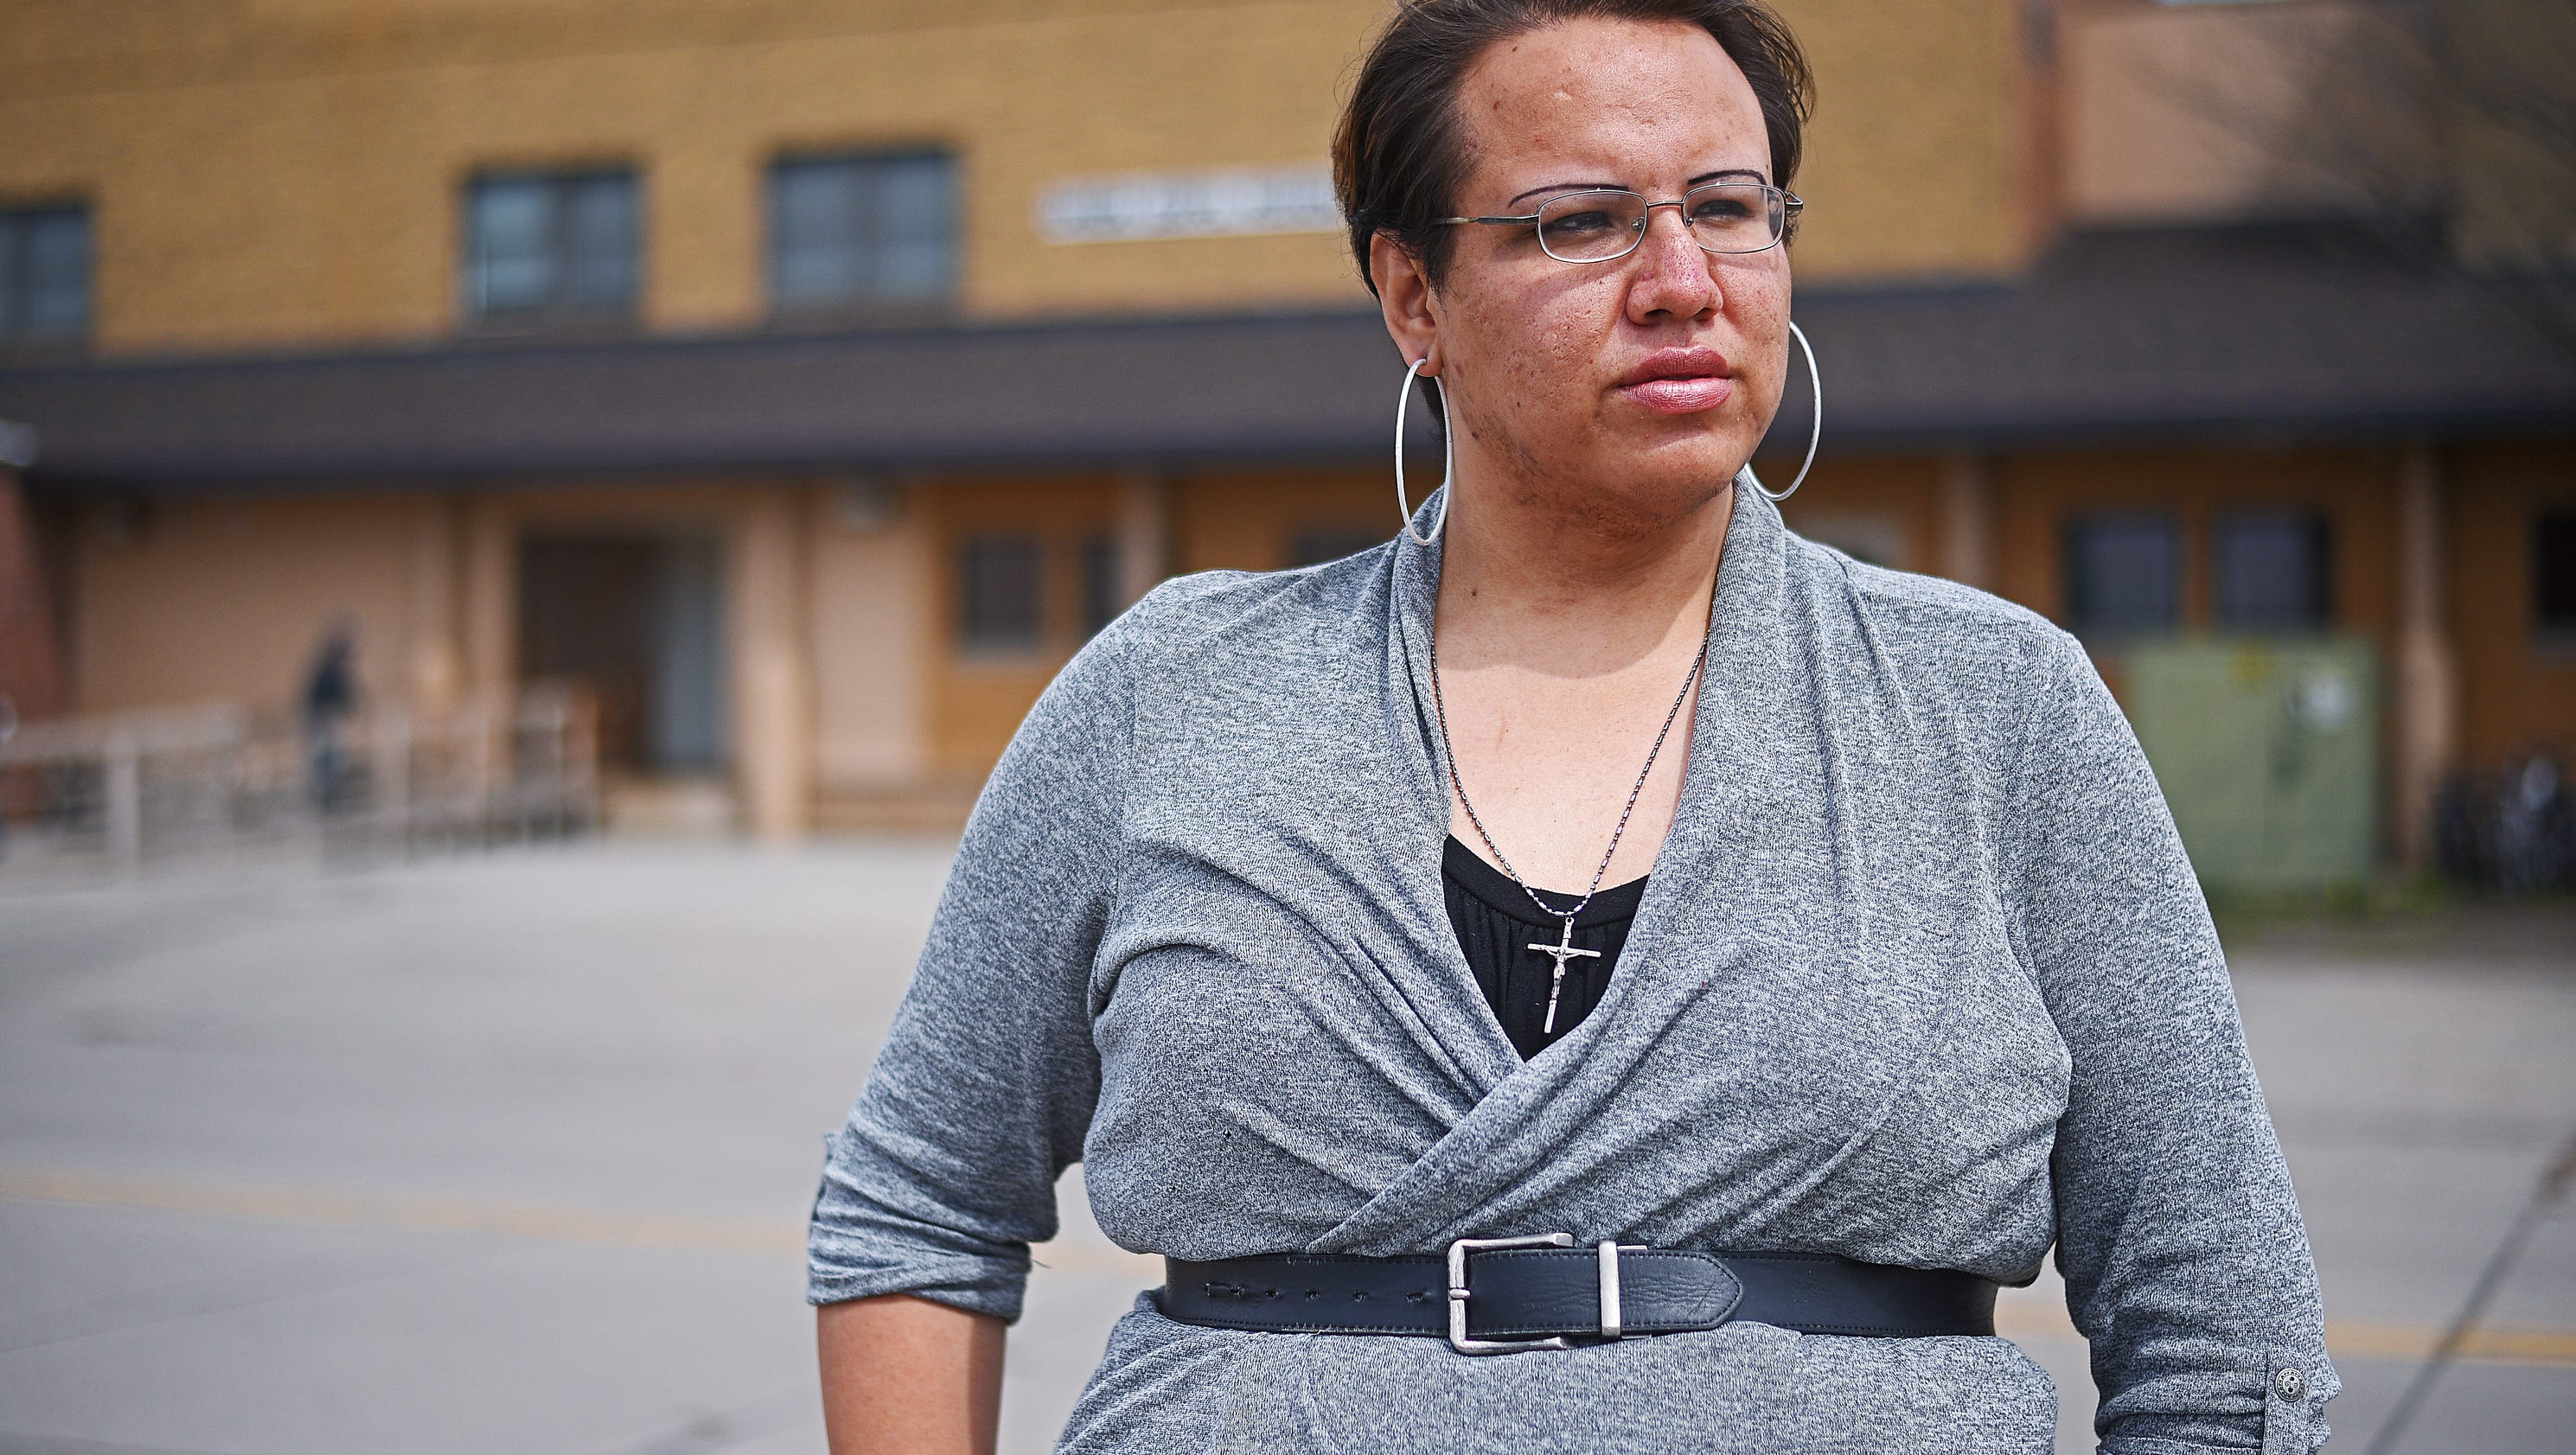 transgender woman asked to leave mission